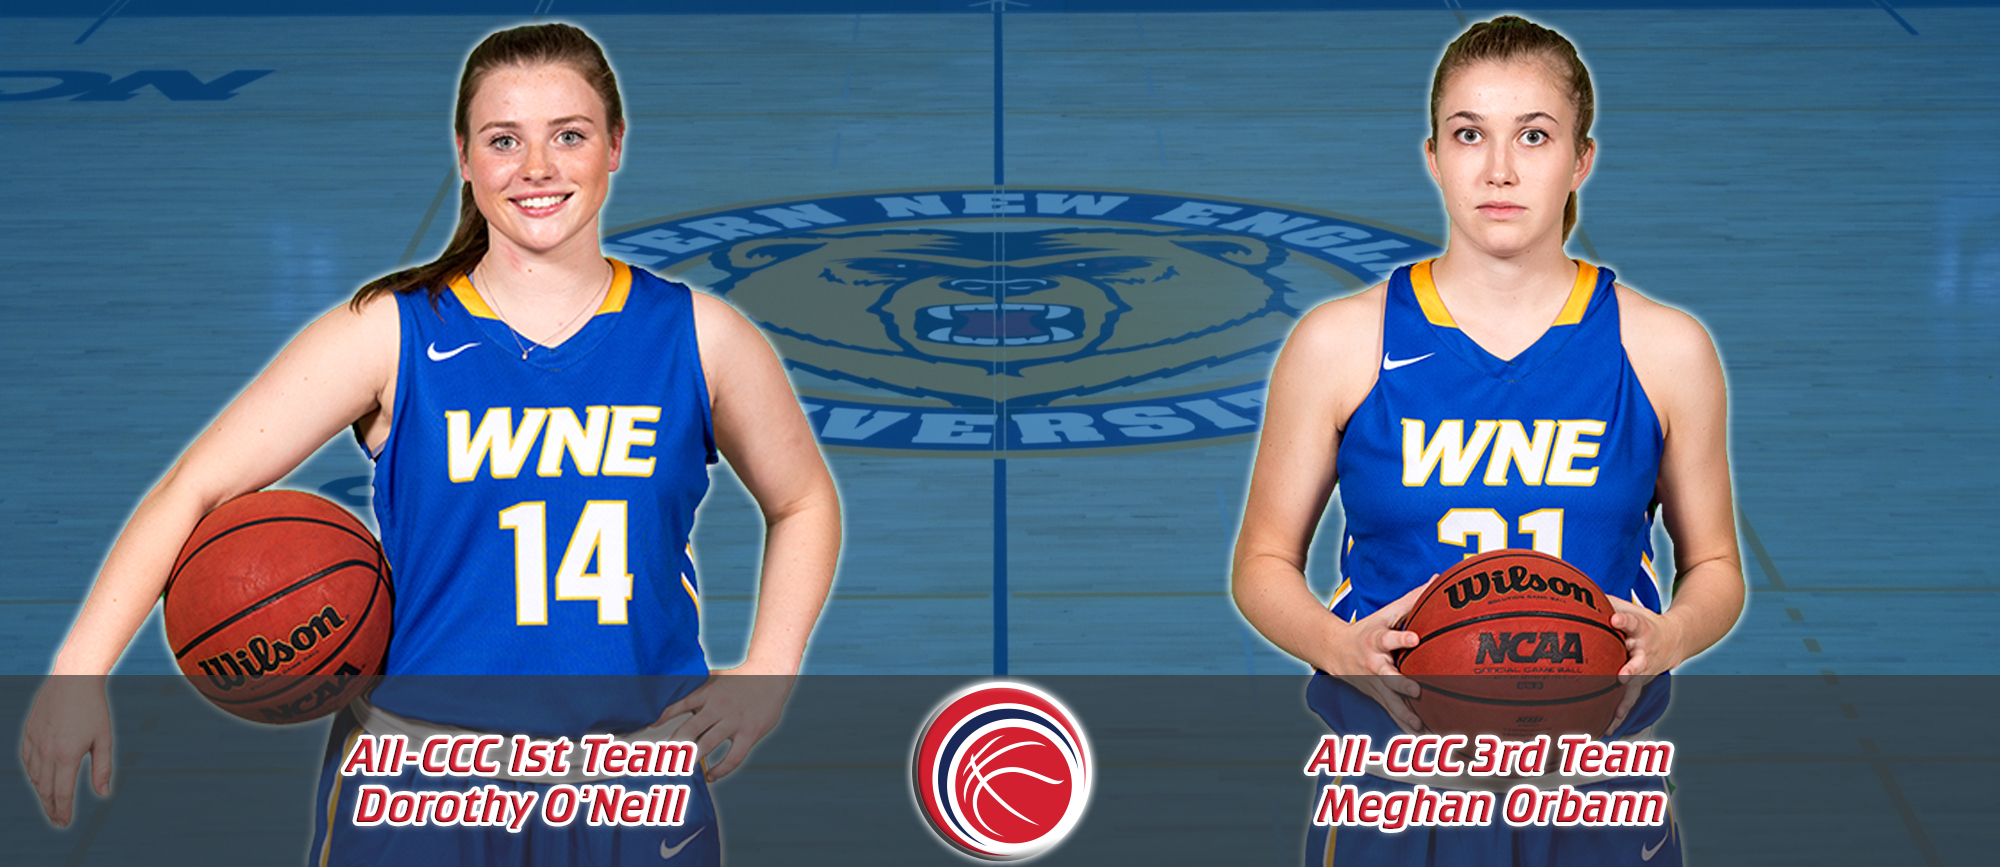 O'Neill & Orbann Receive All-CCC Recognition